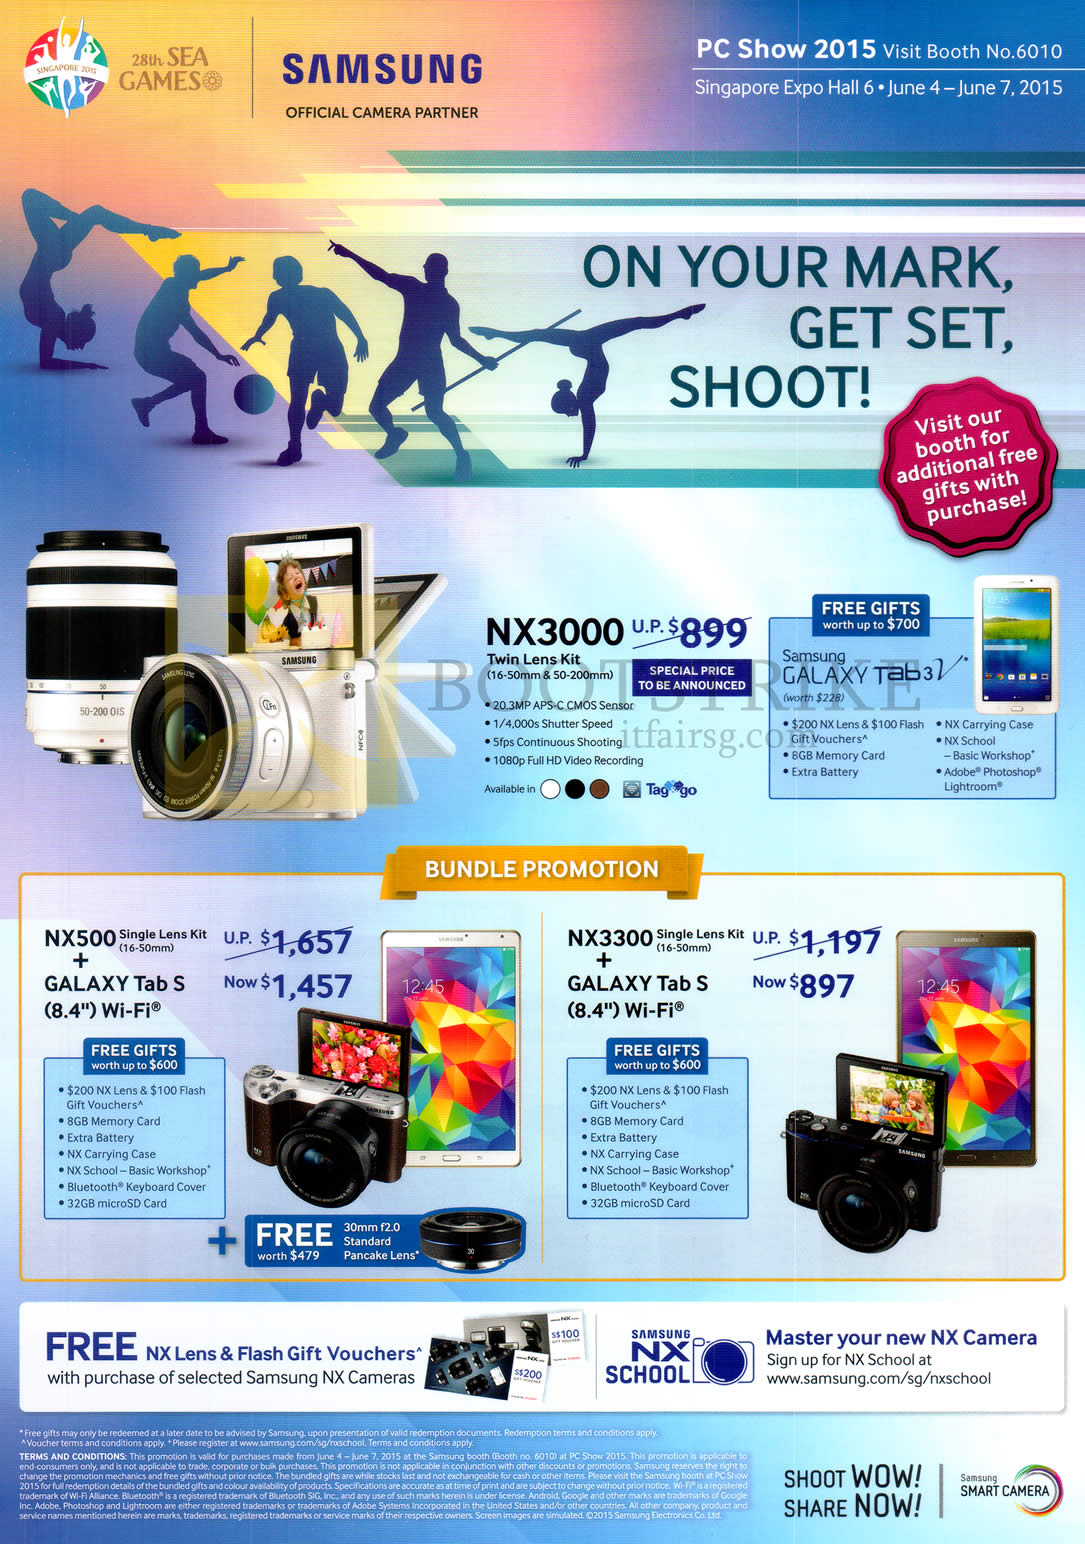 Samsung Digital Cameras Nx3000 Nx500 Nx3300 Free Galaxy Tab 3v Pc Show 2015 Price List Image Brochure Of